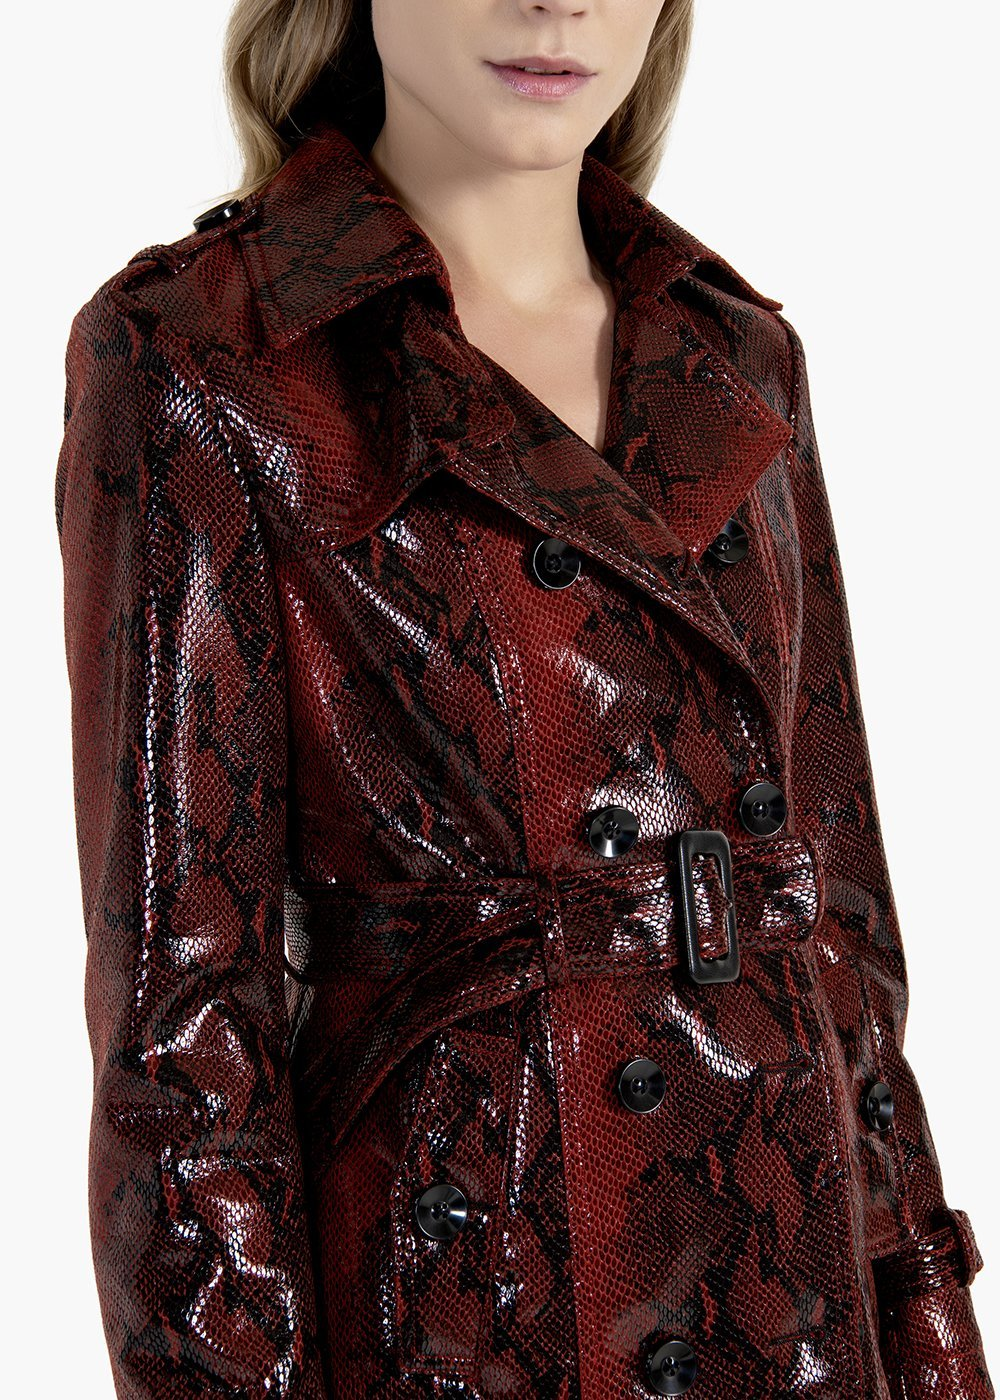 Taigor double-breasted trench coat with belt and buckle - Passione\ Black\ Animalier - Woman